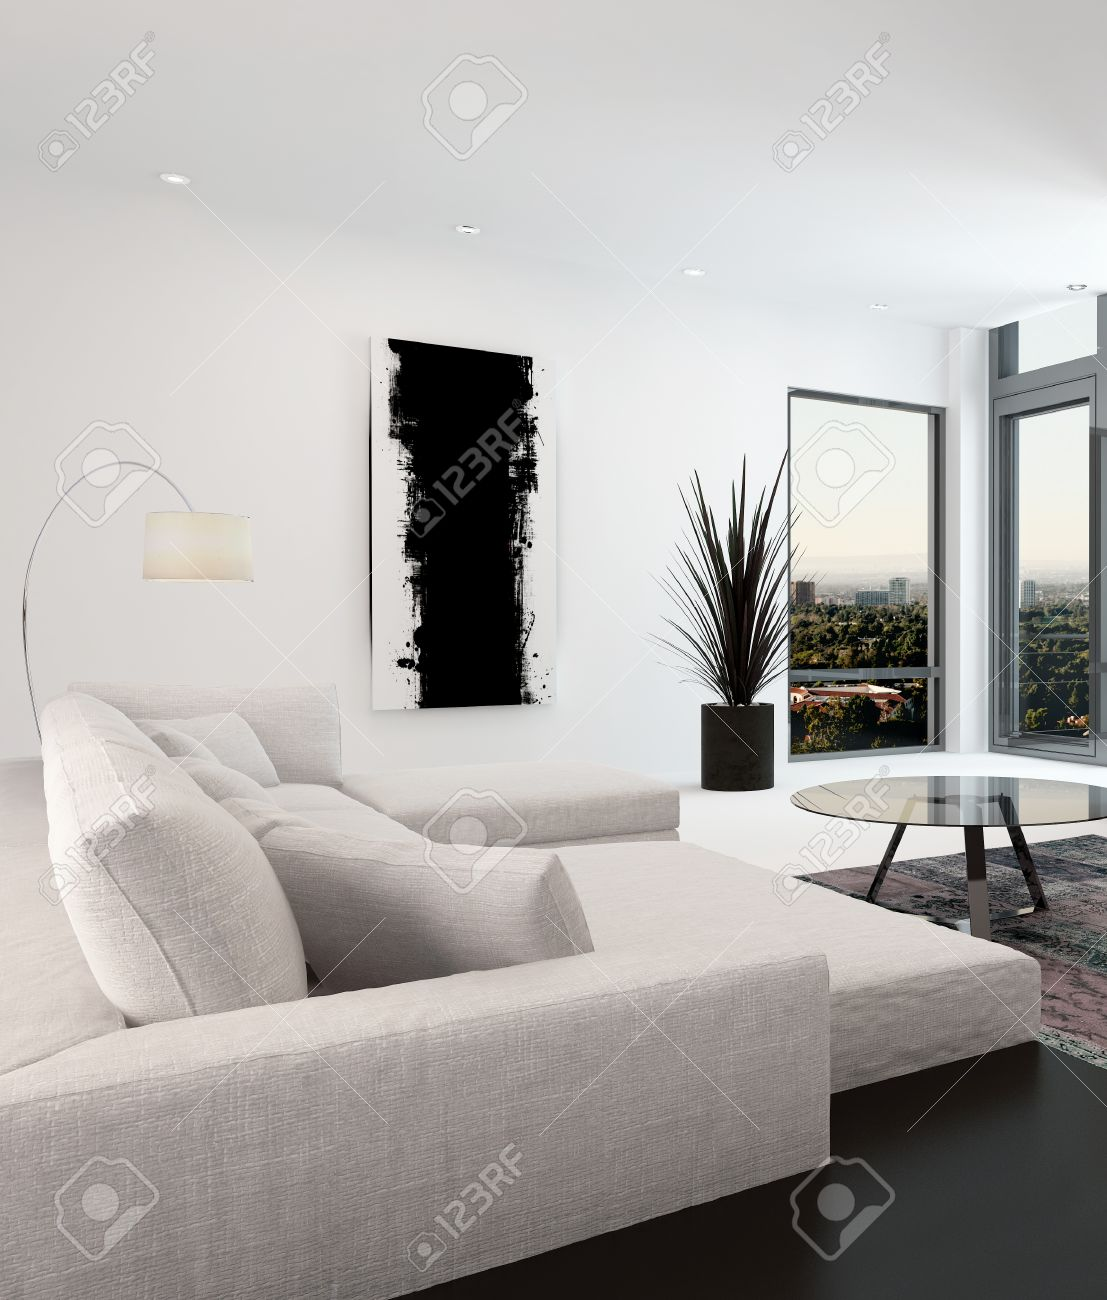 White And Black Living Room Interior With A Close Up View Of.. Stock ...